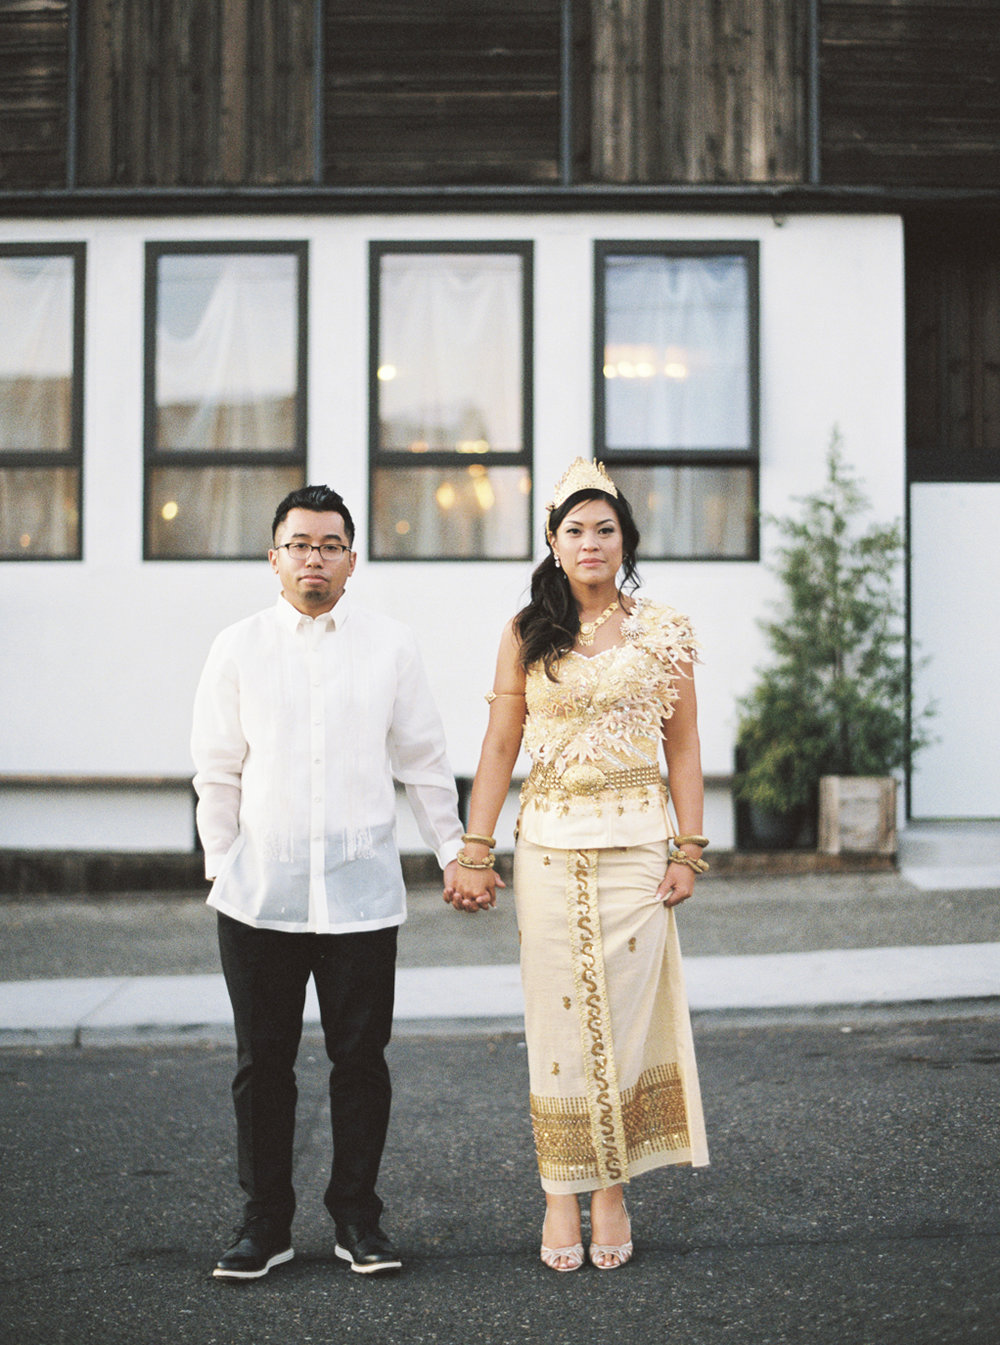 HIP INTIMATE LOCAL WEDDING • UNION PINE • PORTLAND, OR